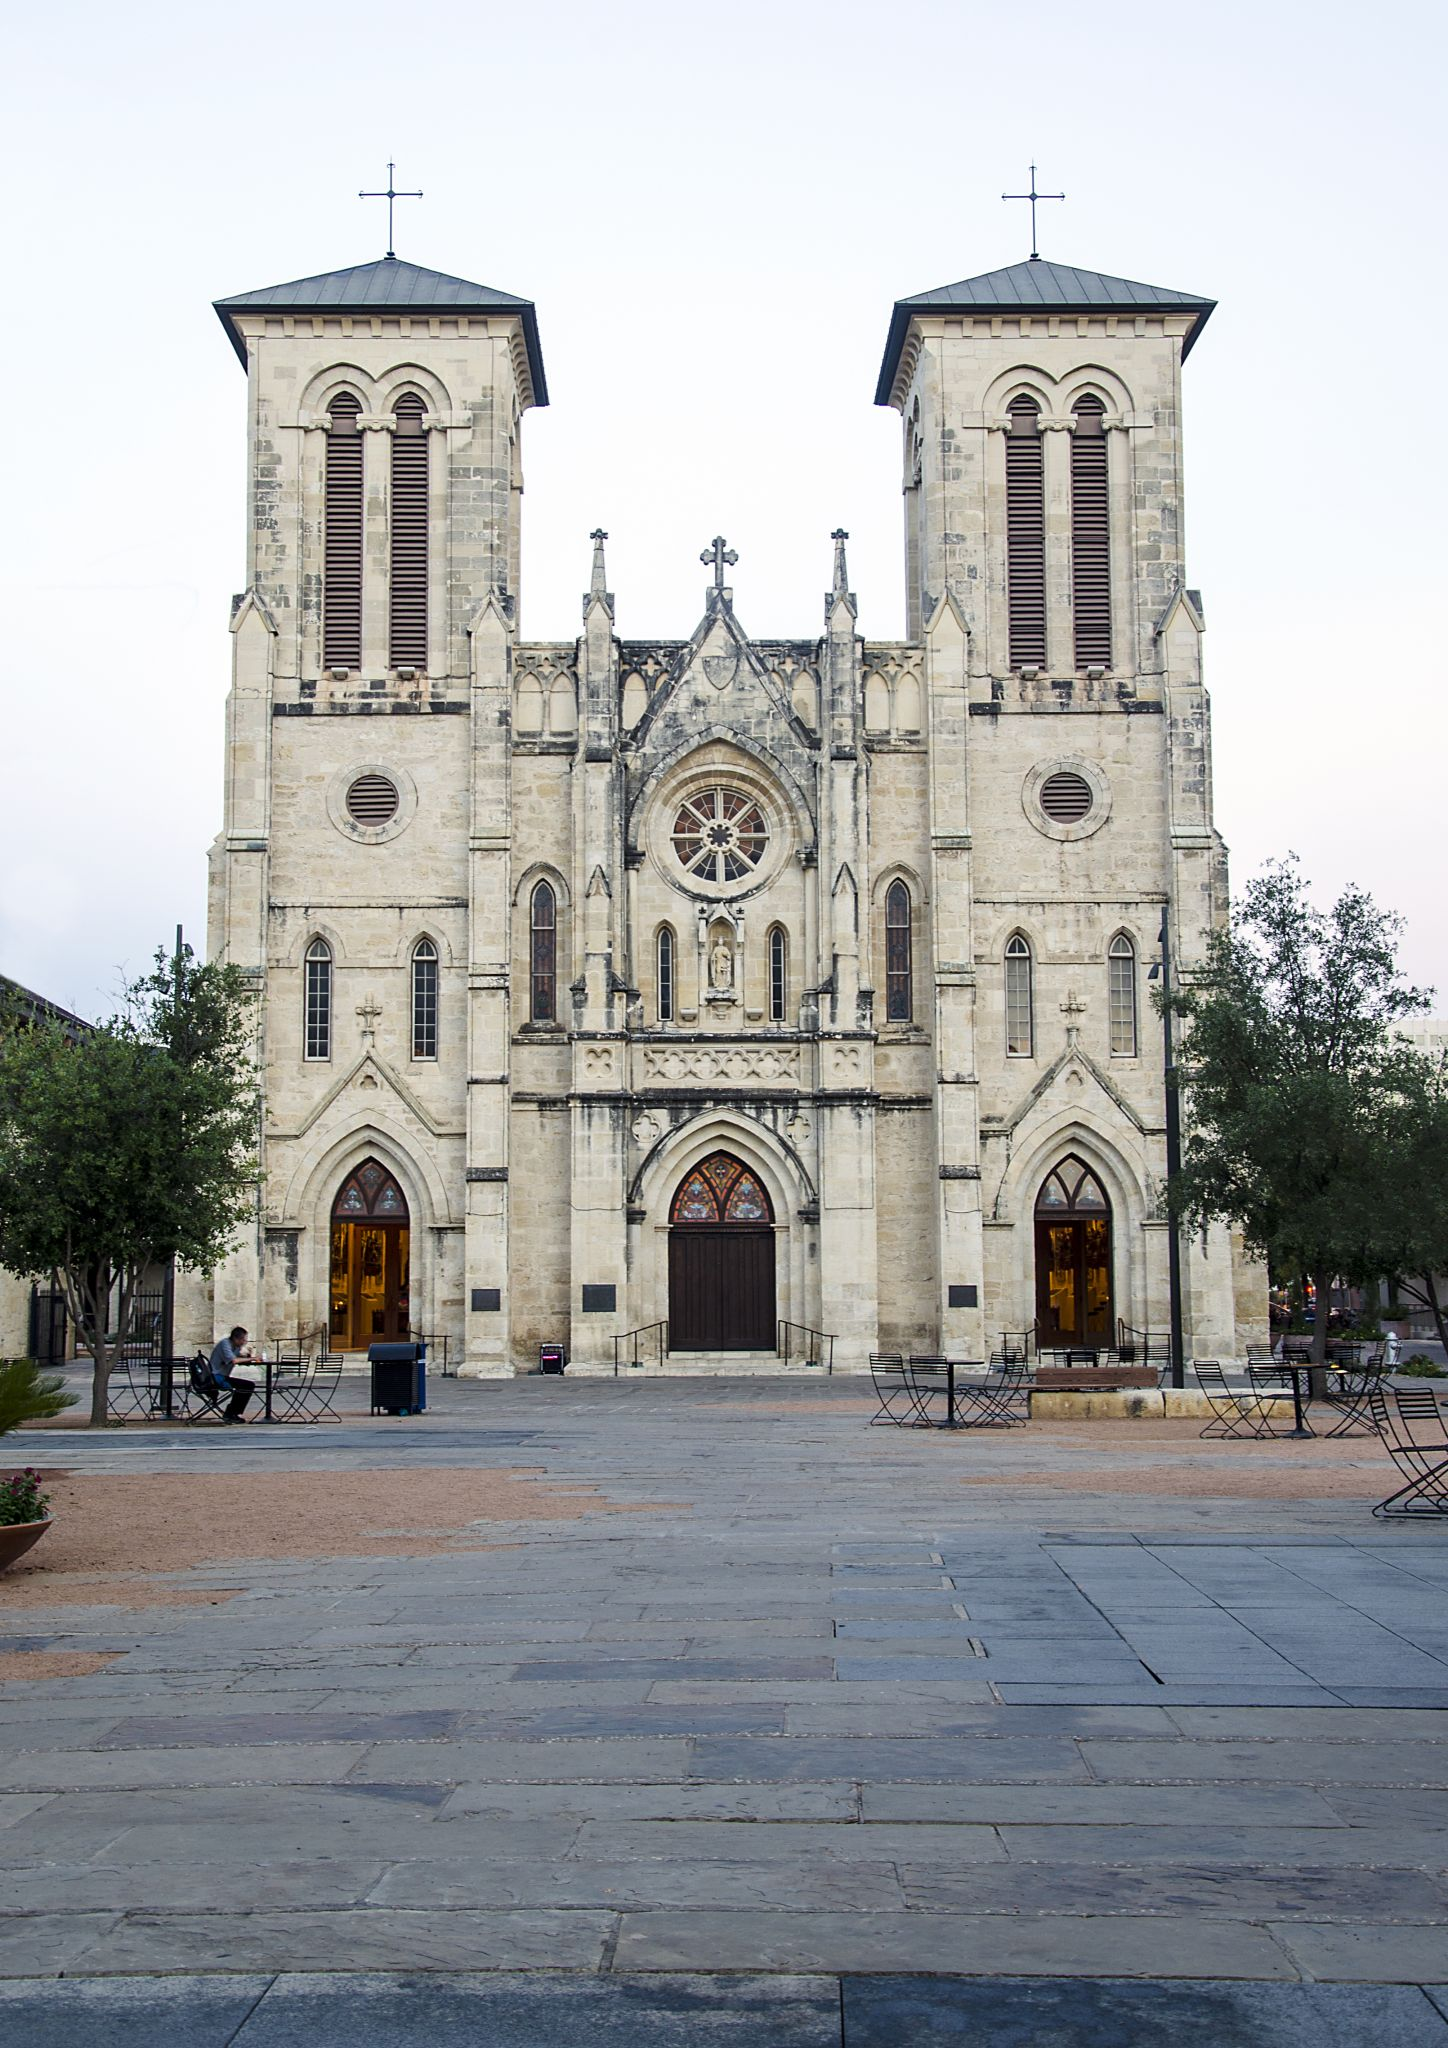 San Antonio's San Fernando Cathedral listed as one of America's most haunted spots